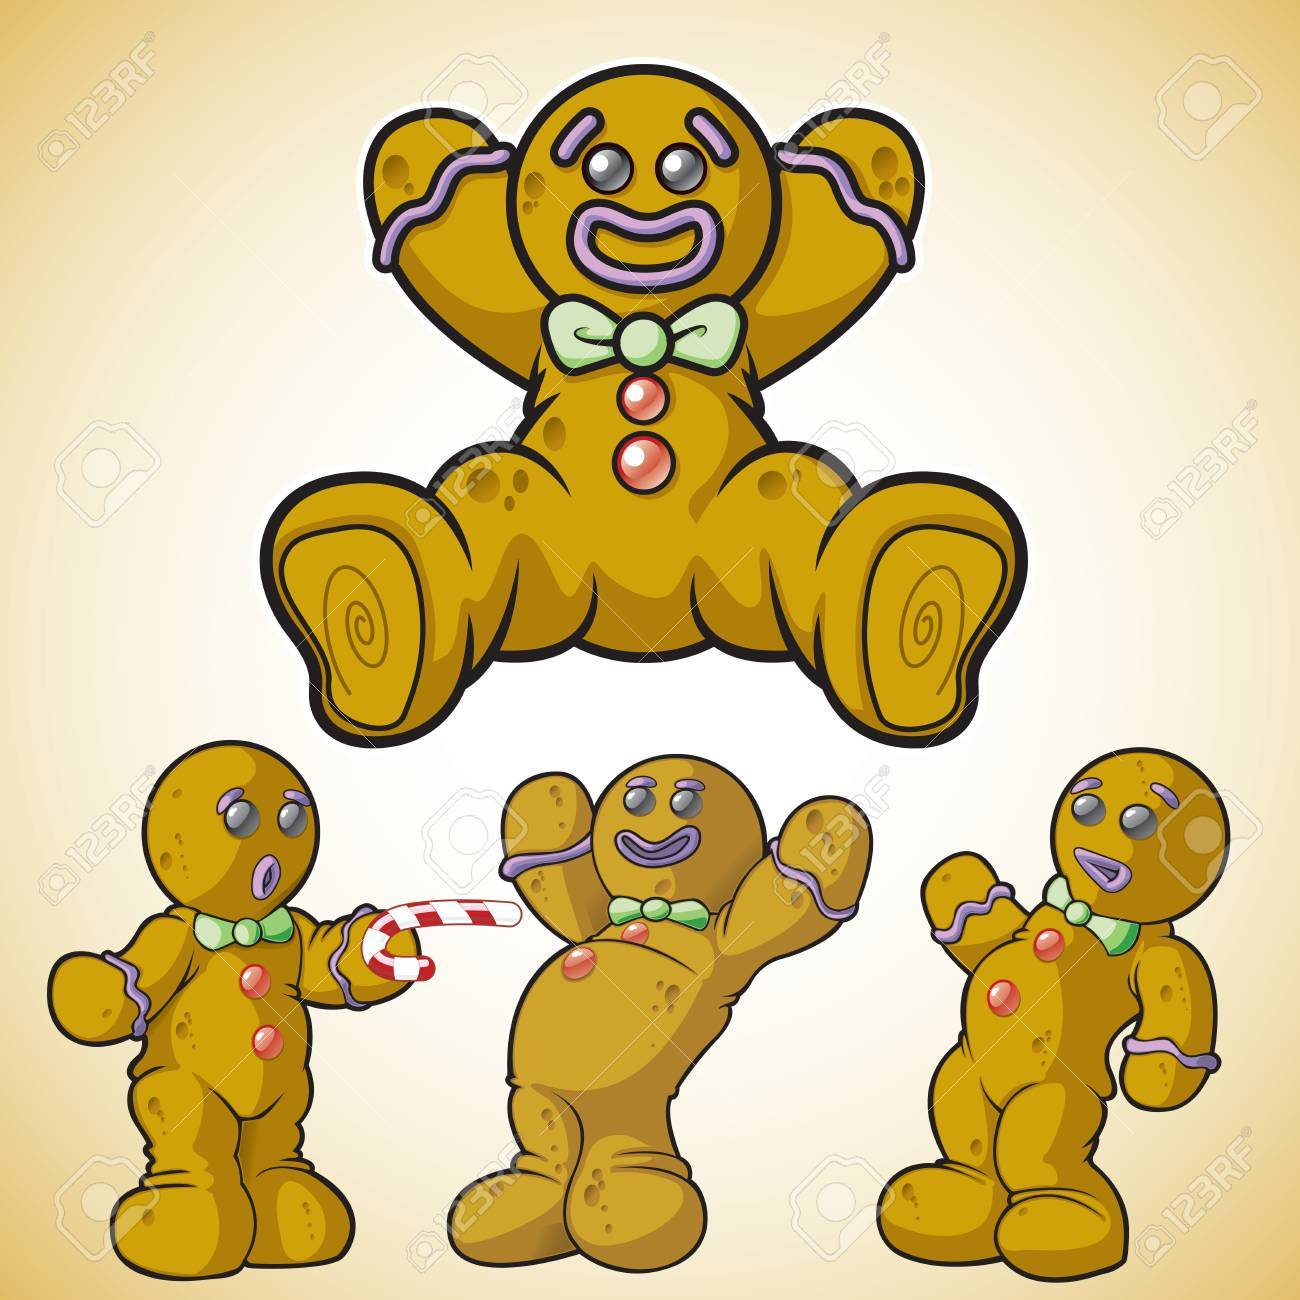 Gingerbread man in different poses Stock Vector - 19385912